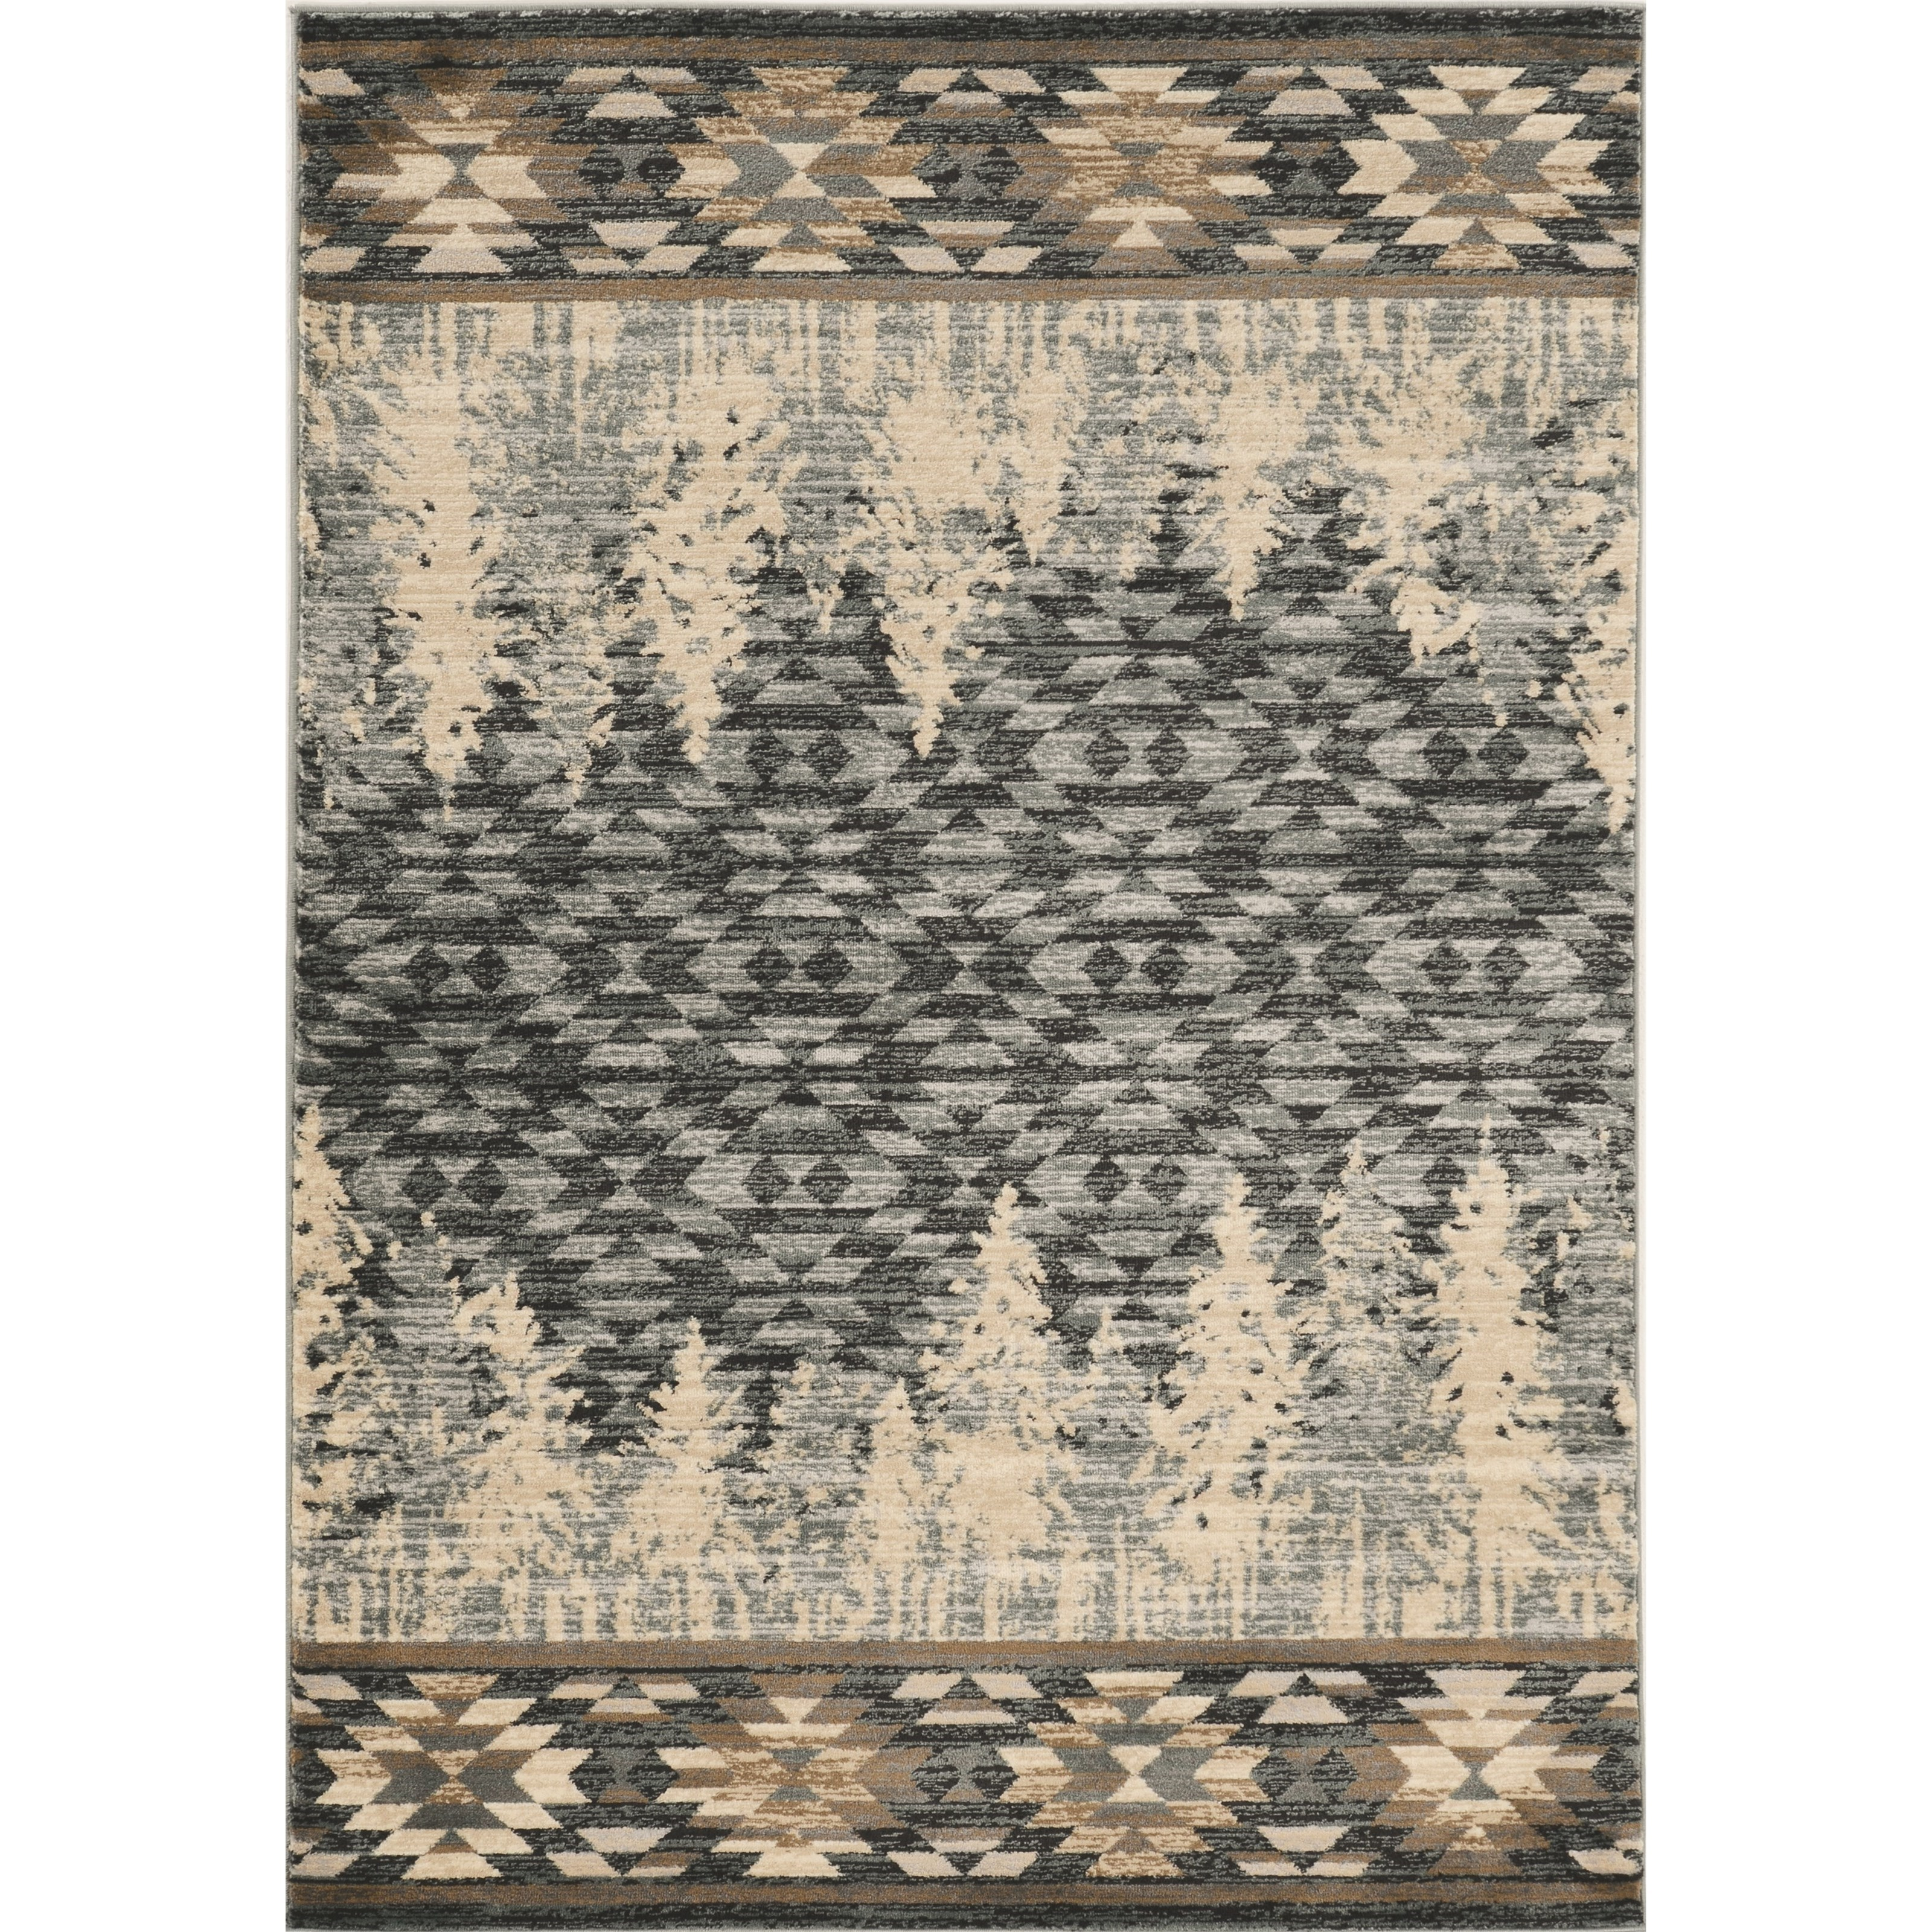 "2' x 7'7"" Runner Slate Blue Pines Rug"